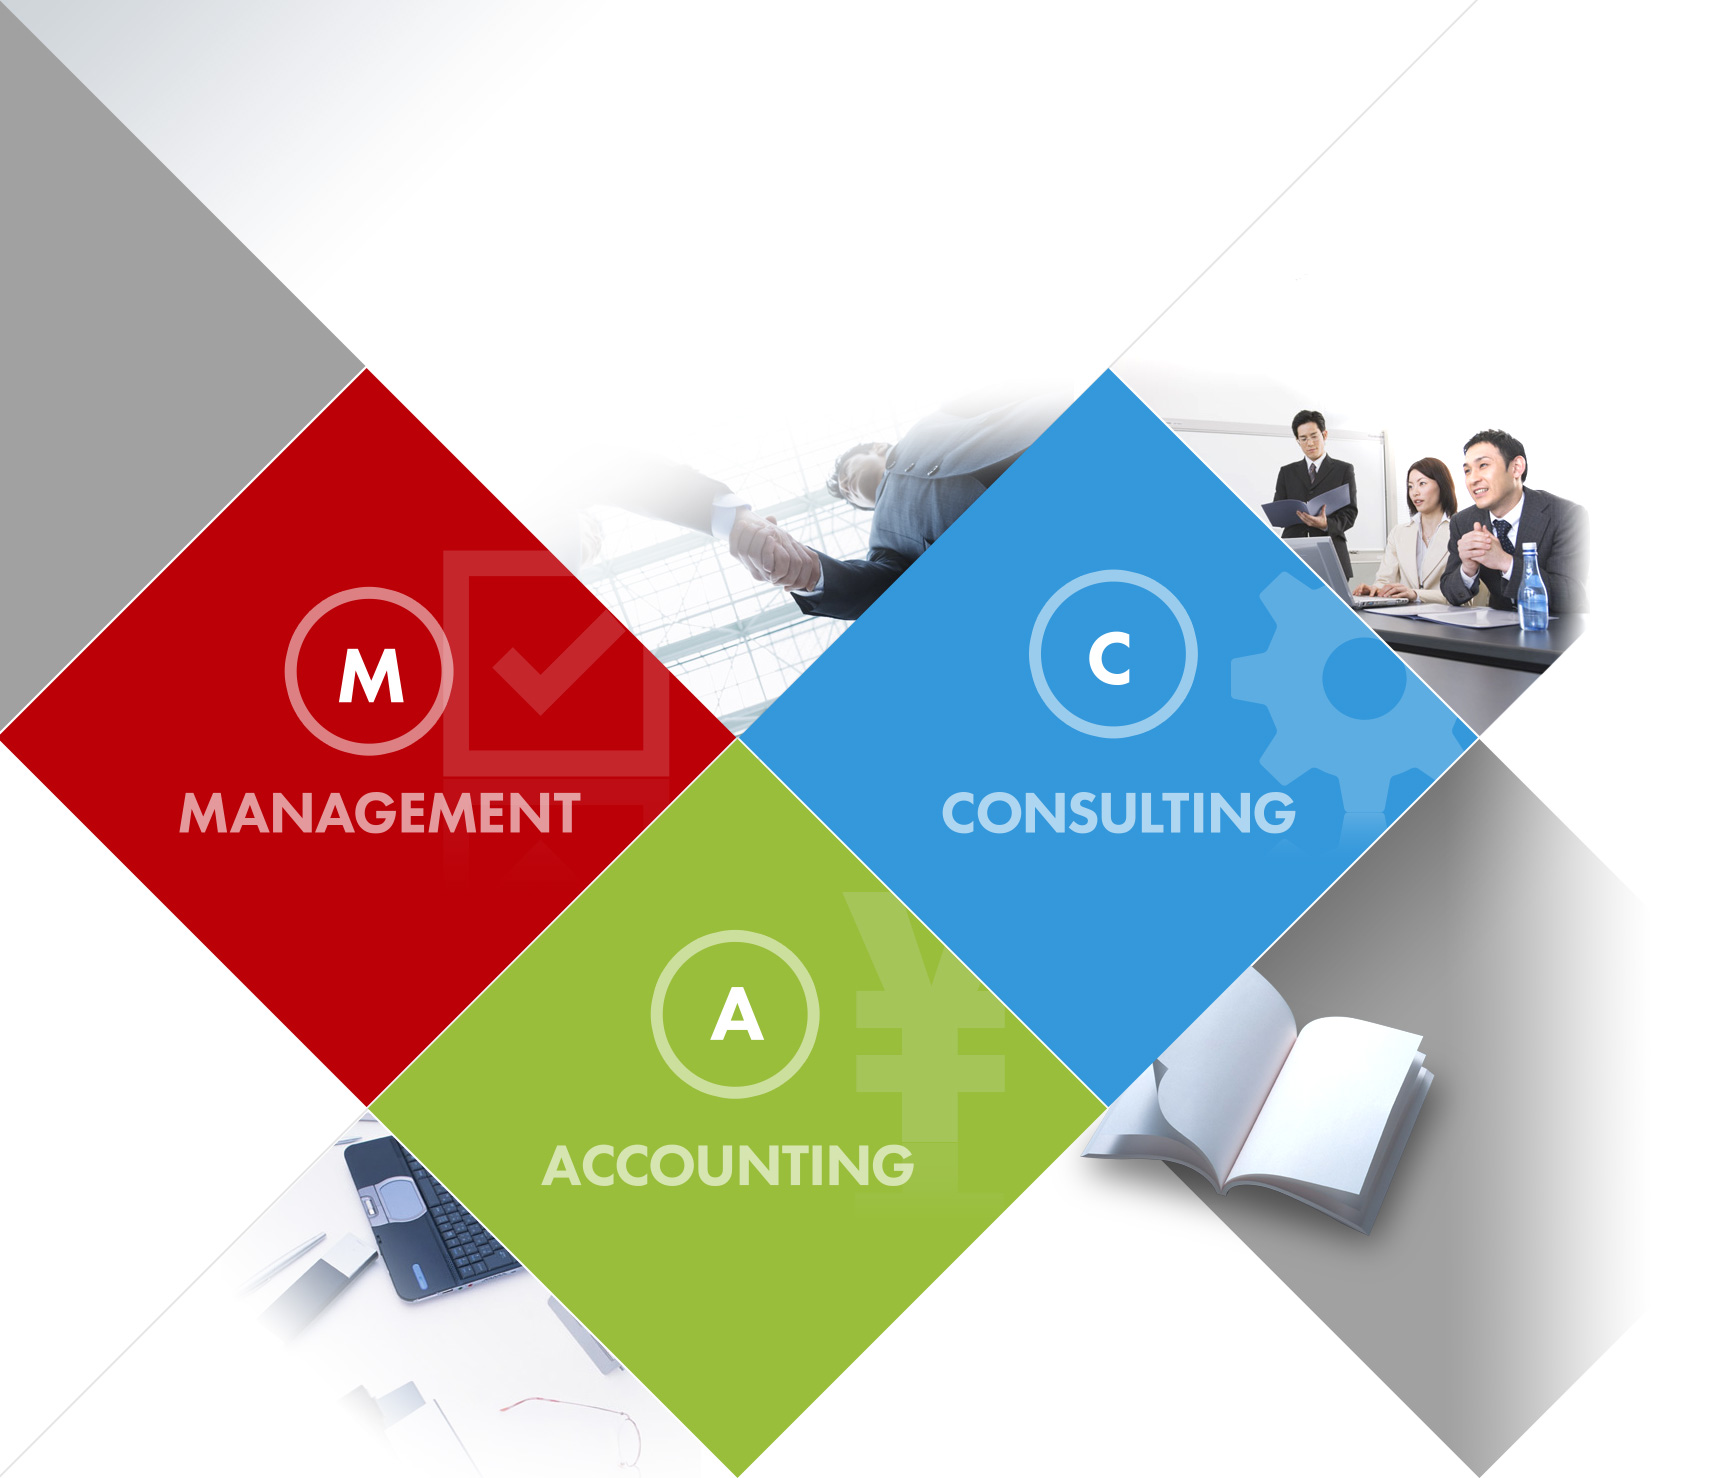 MANAGEMENT | ACCOUNTING | CONSULTING